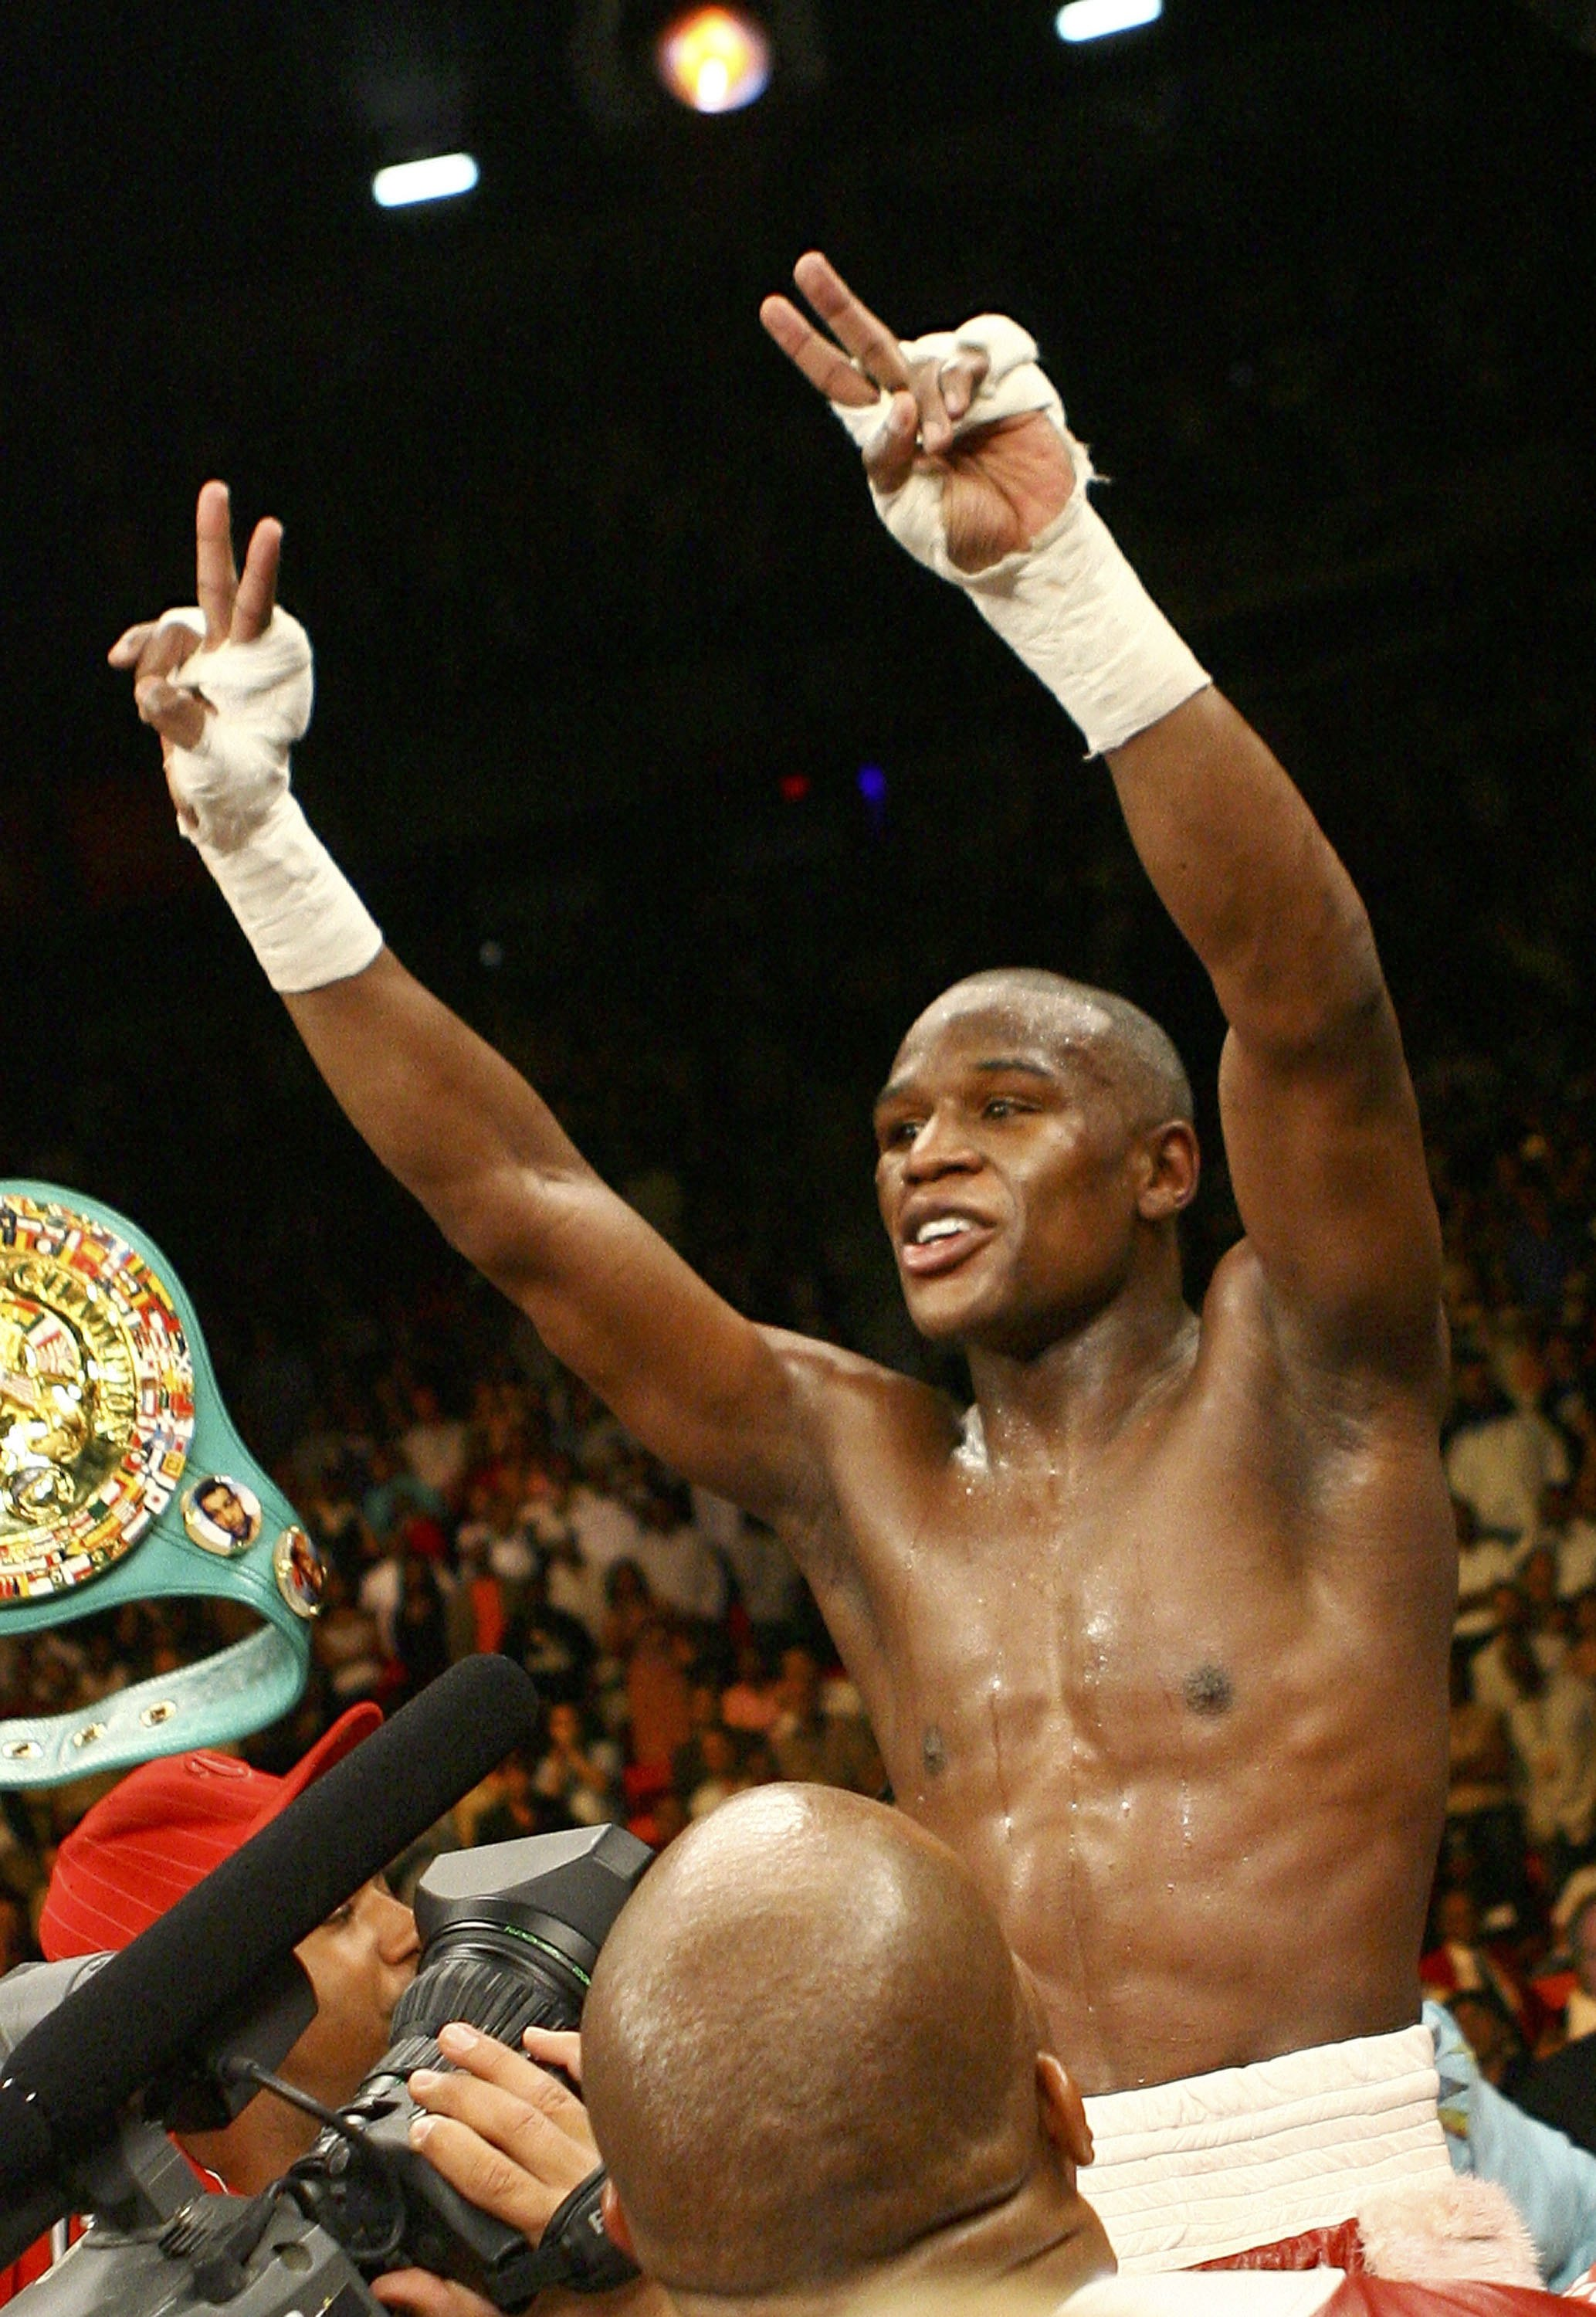 LAS VEGAS - APRIL 08:  Floyd Mayweather raises his arms in victory after winning by unanimous decision against Zab Judah during the Welterweight Championship fight at Thomas & Mack Arena on April 8, 2006 in Las Vegas, Nevada.  (Photo by Al Bello/Getty Ima